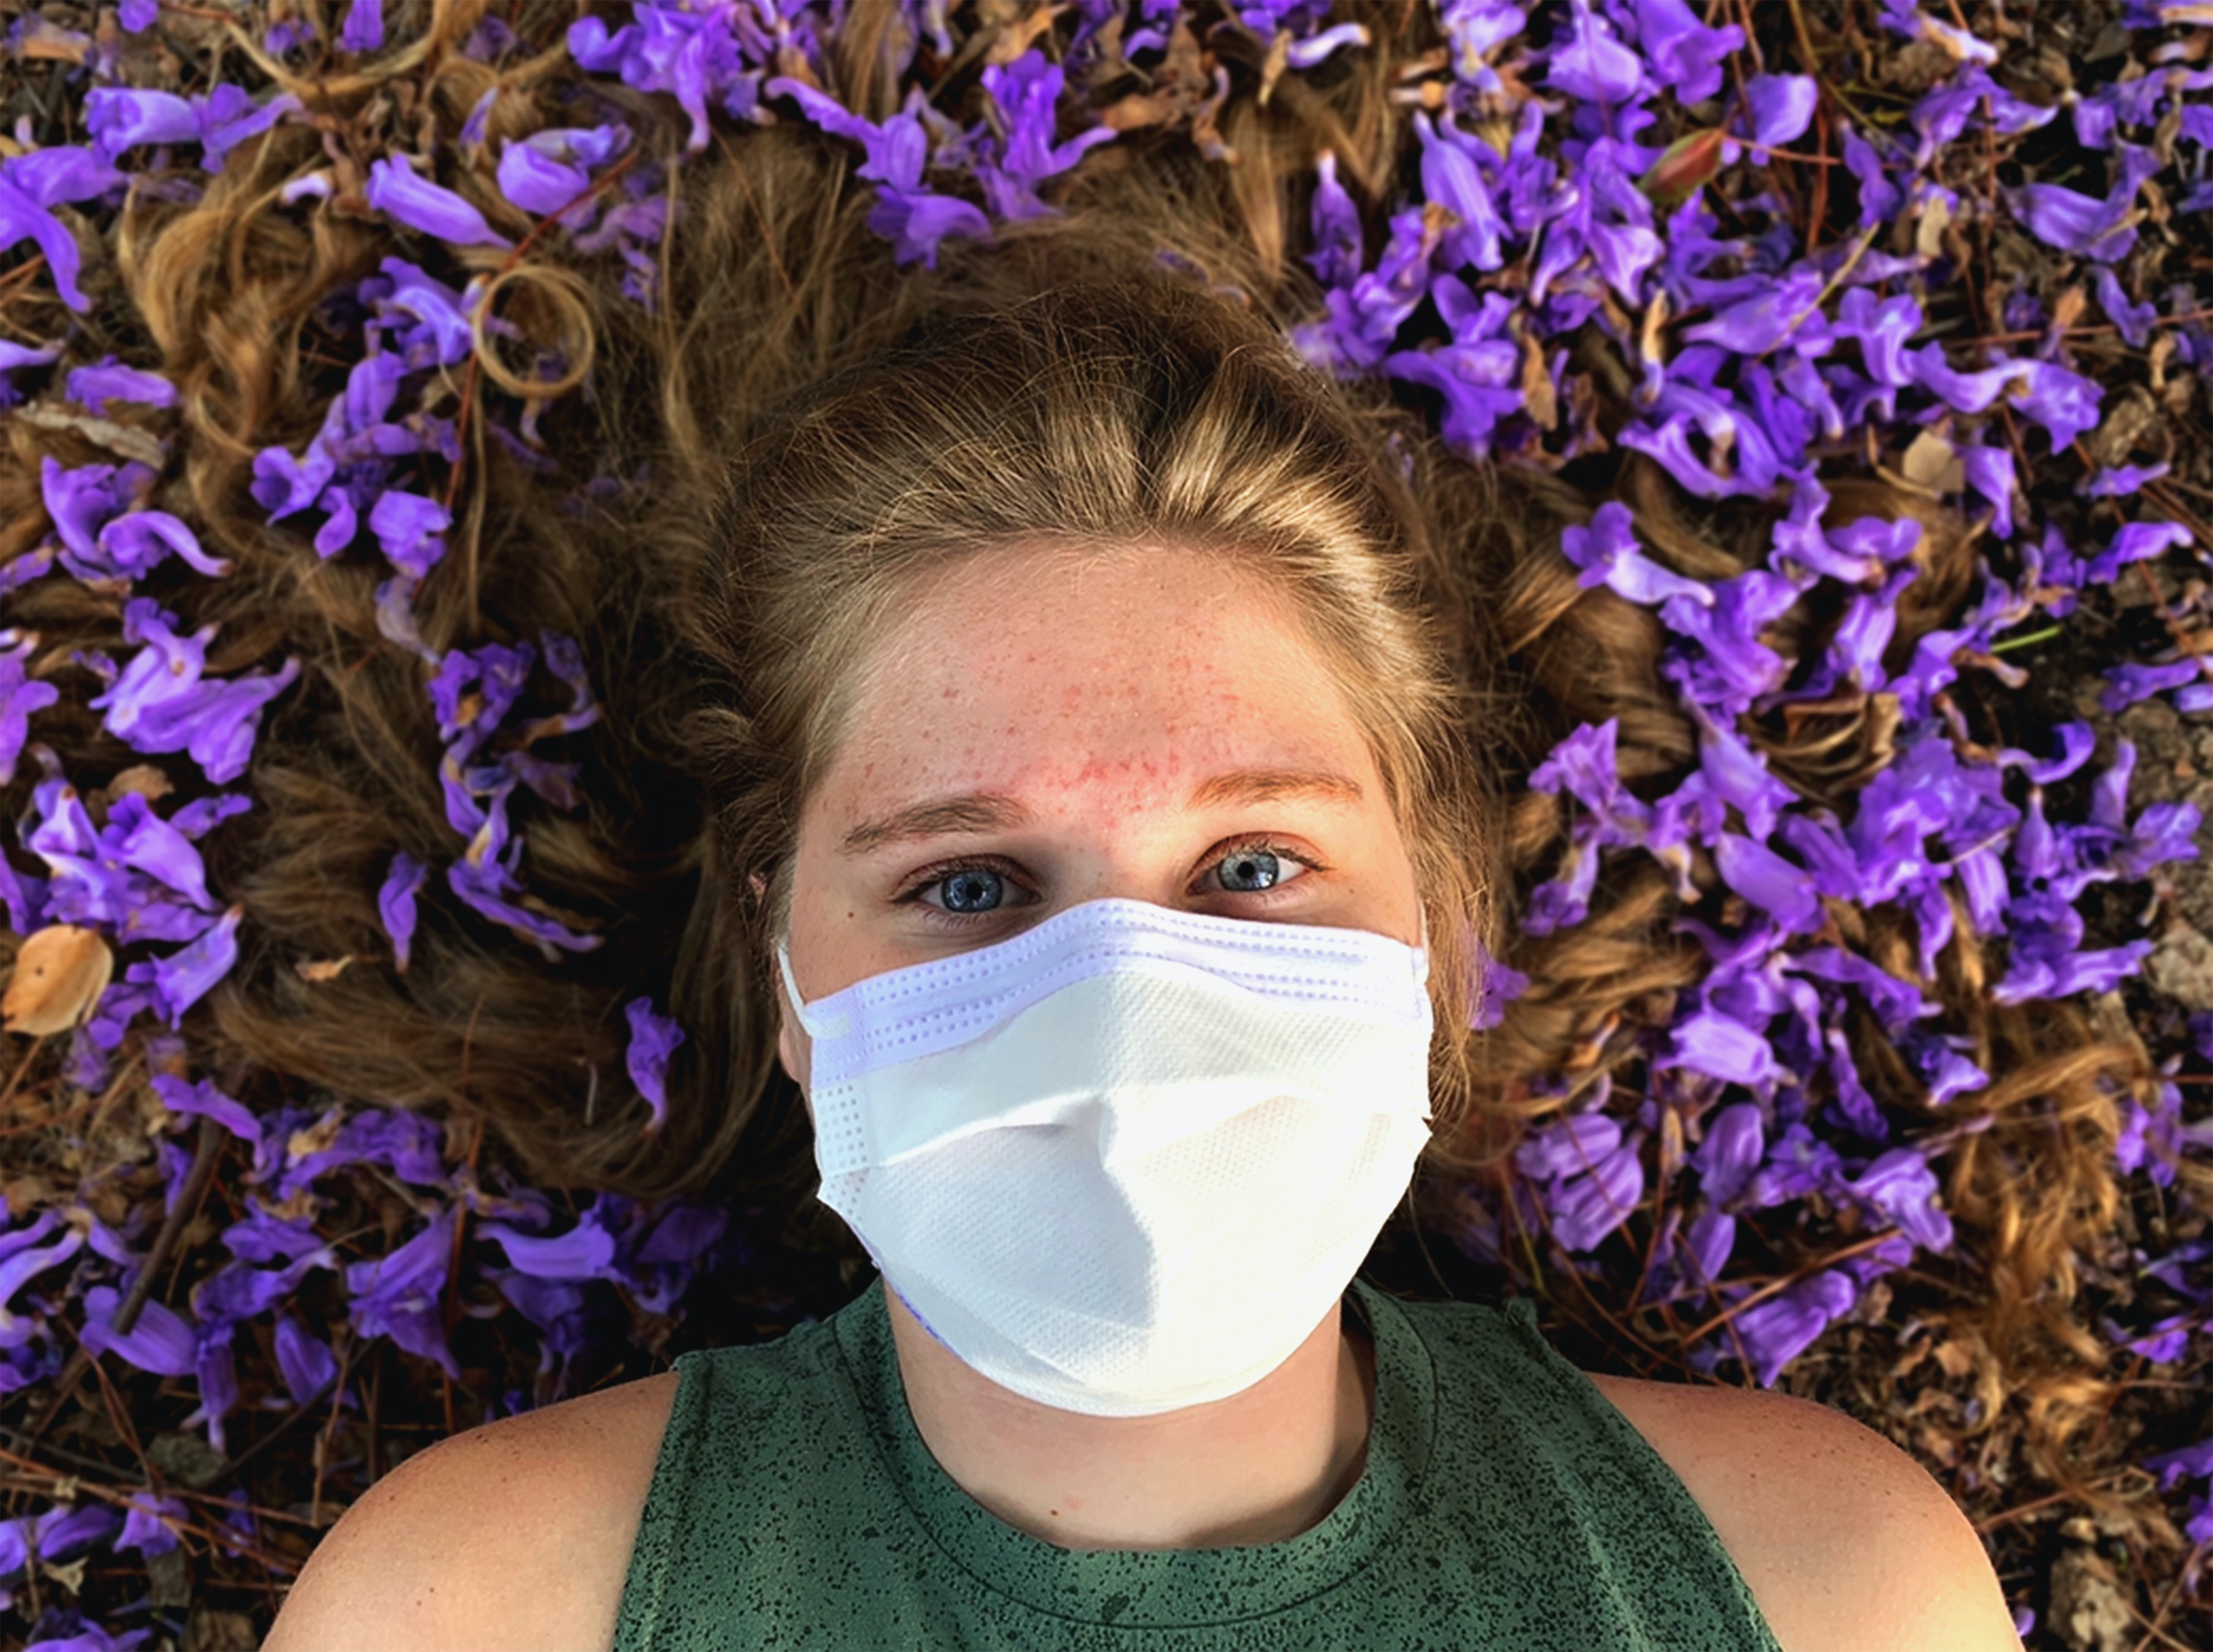 A young woman lays in a bed of purple flowers with her hair splayed out around her head. She is wearing a green top and a white mask.